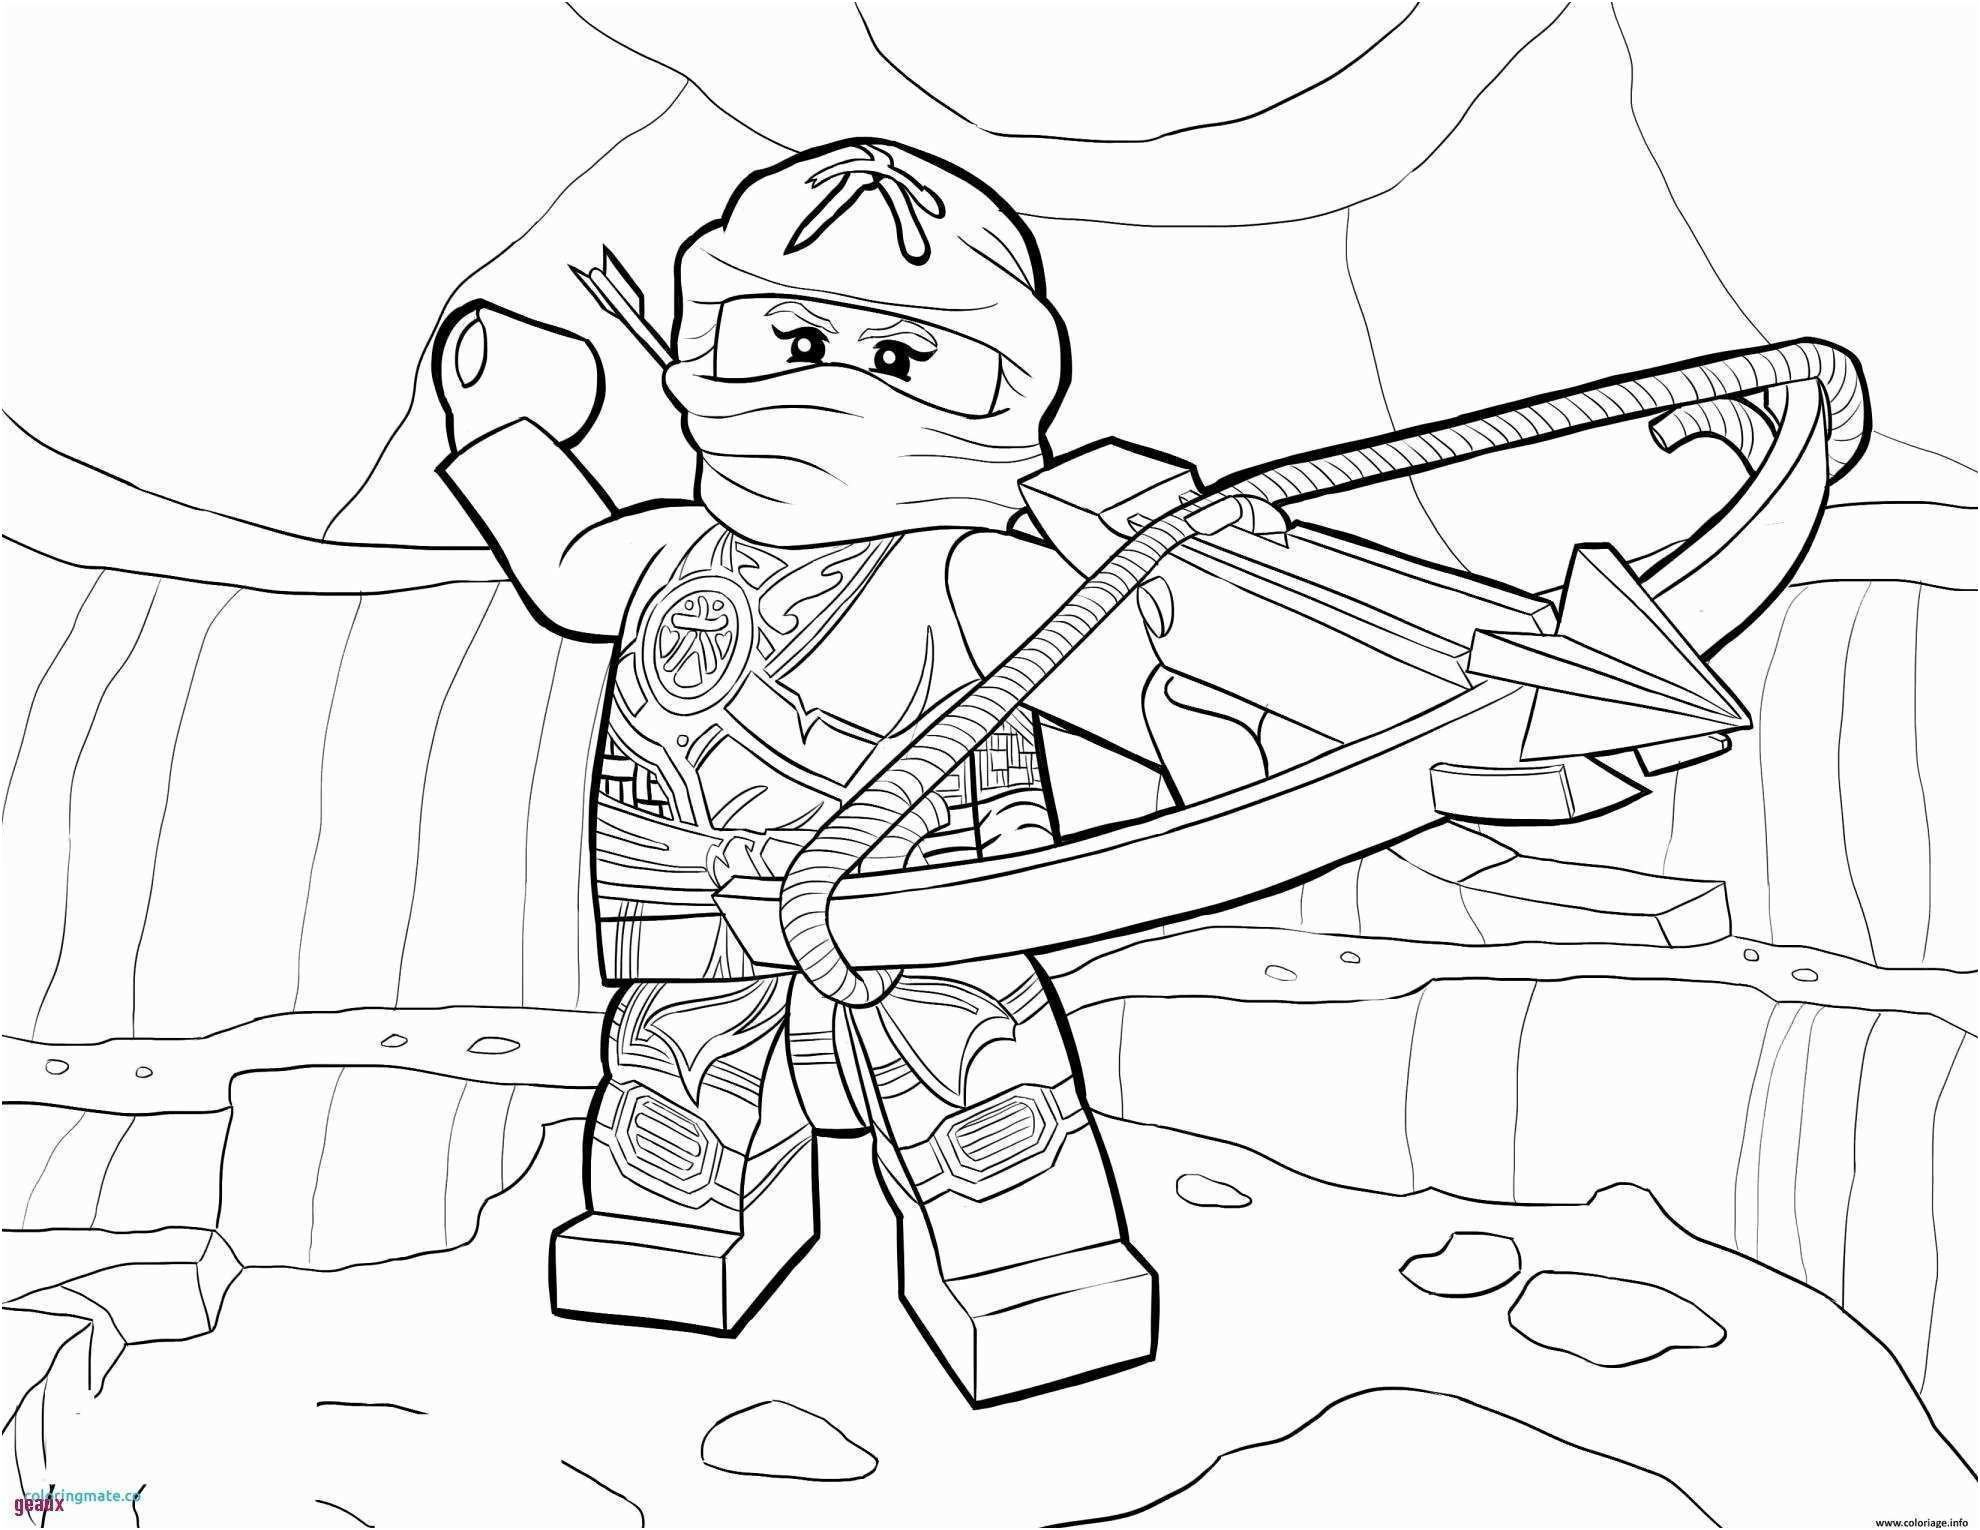 Coloriages De Films Lego On Lego Star Wars Coloriage Inspirational